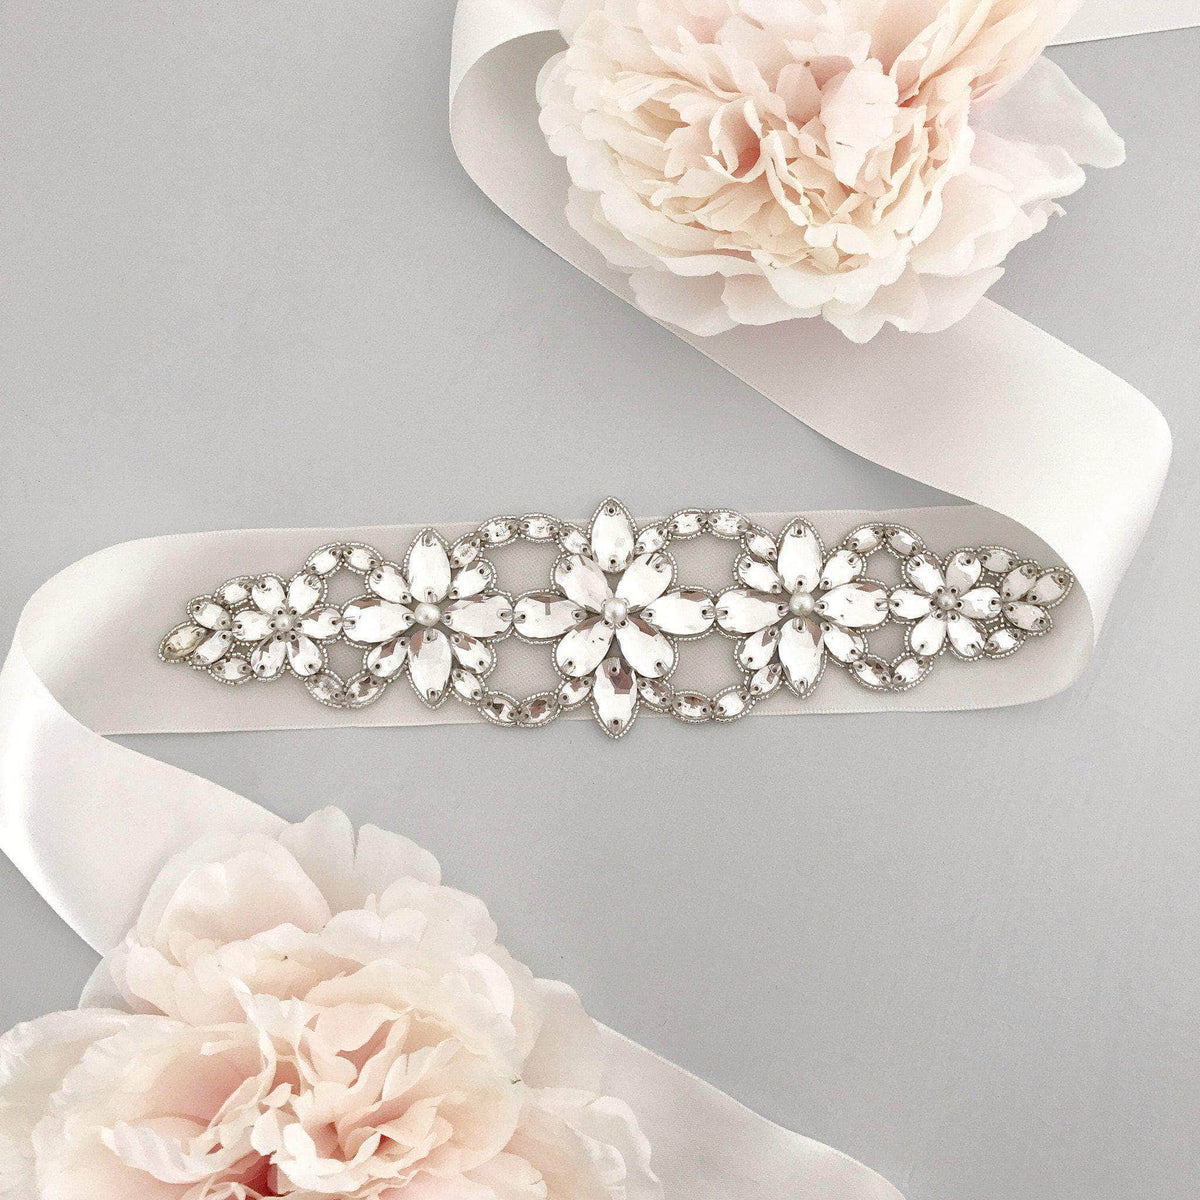 Wedding Belt Silver Statement wedding belt - 'Piper'